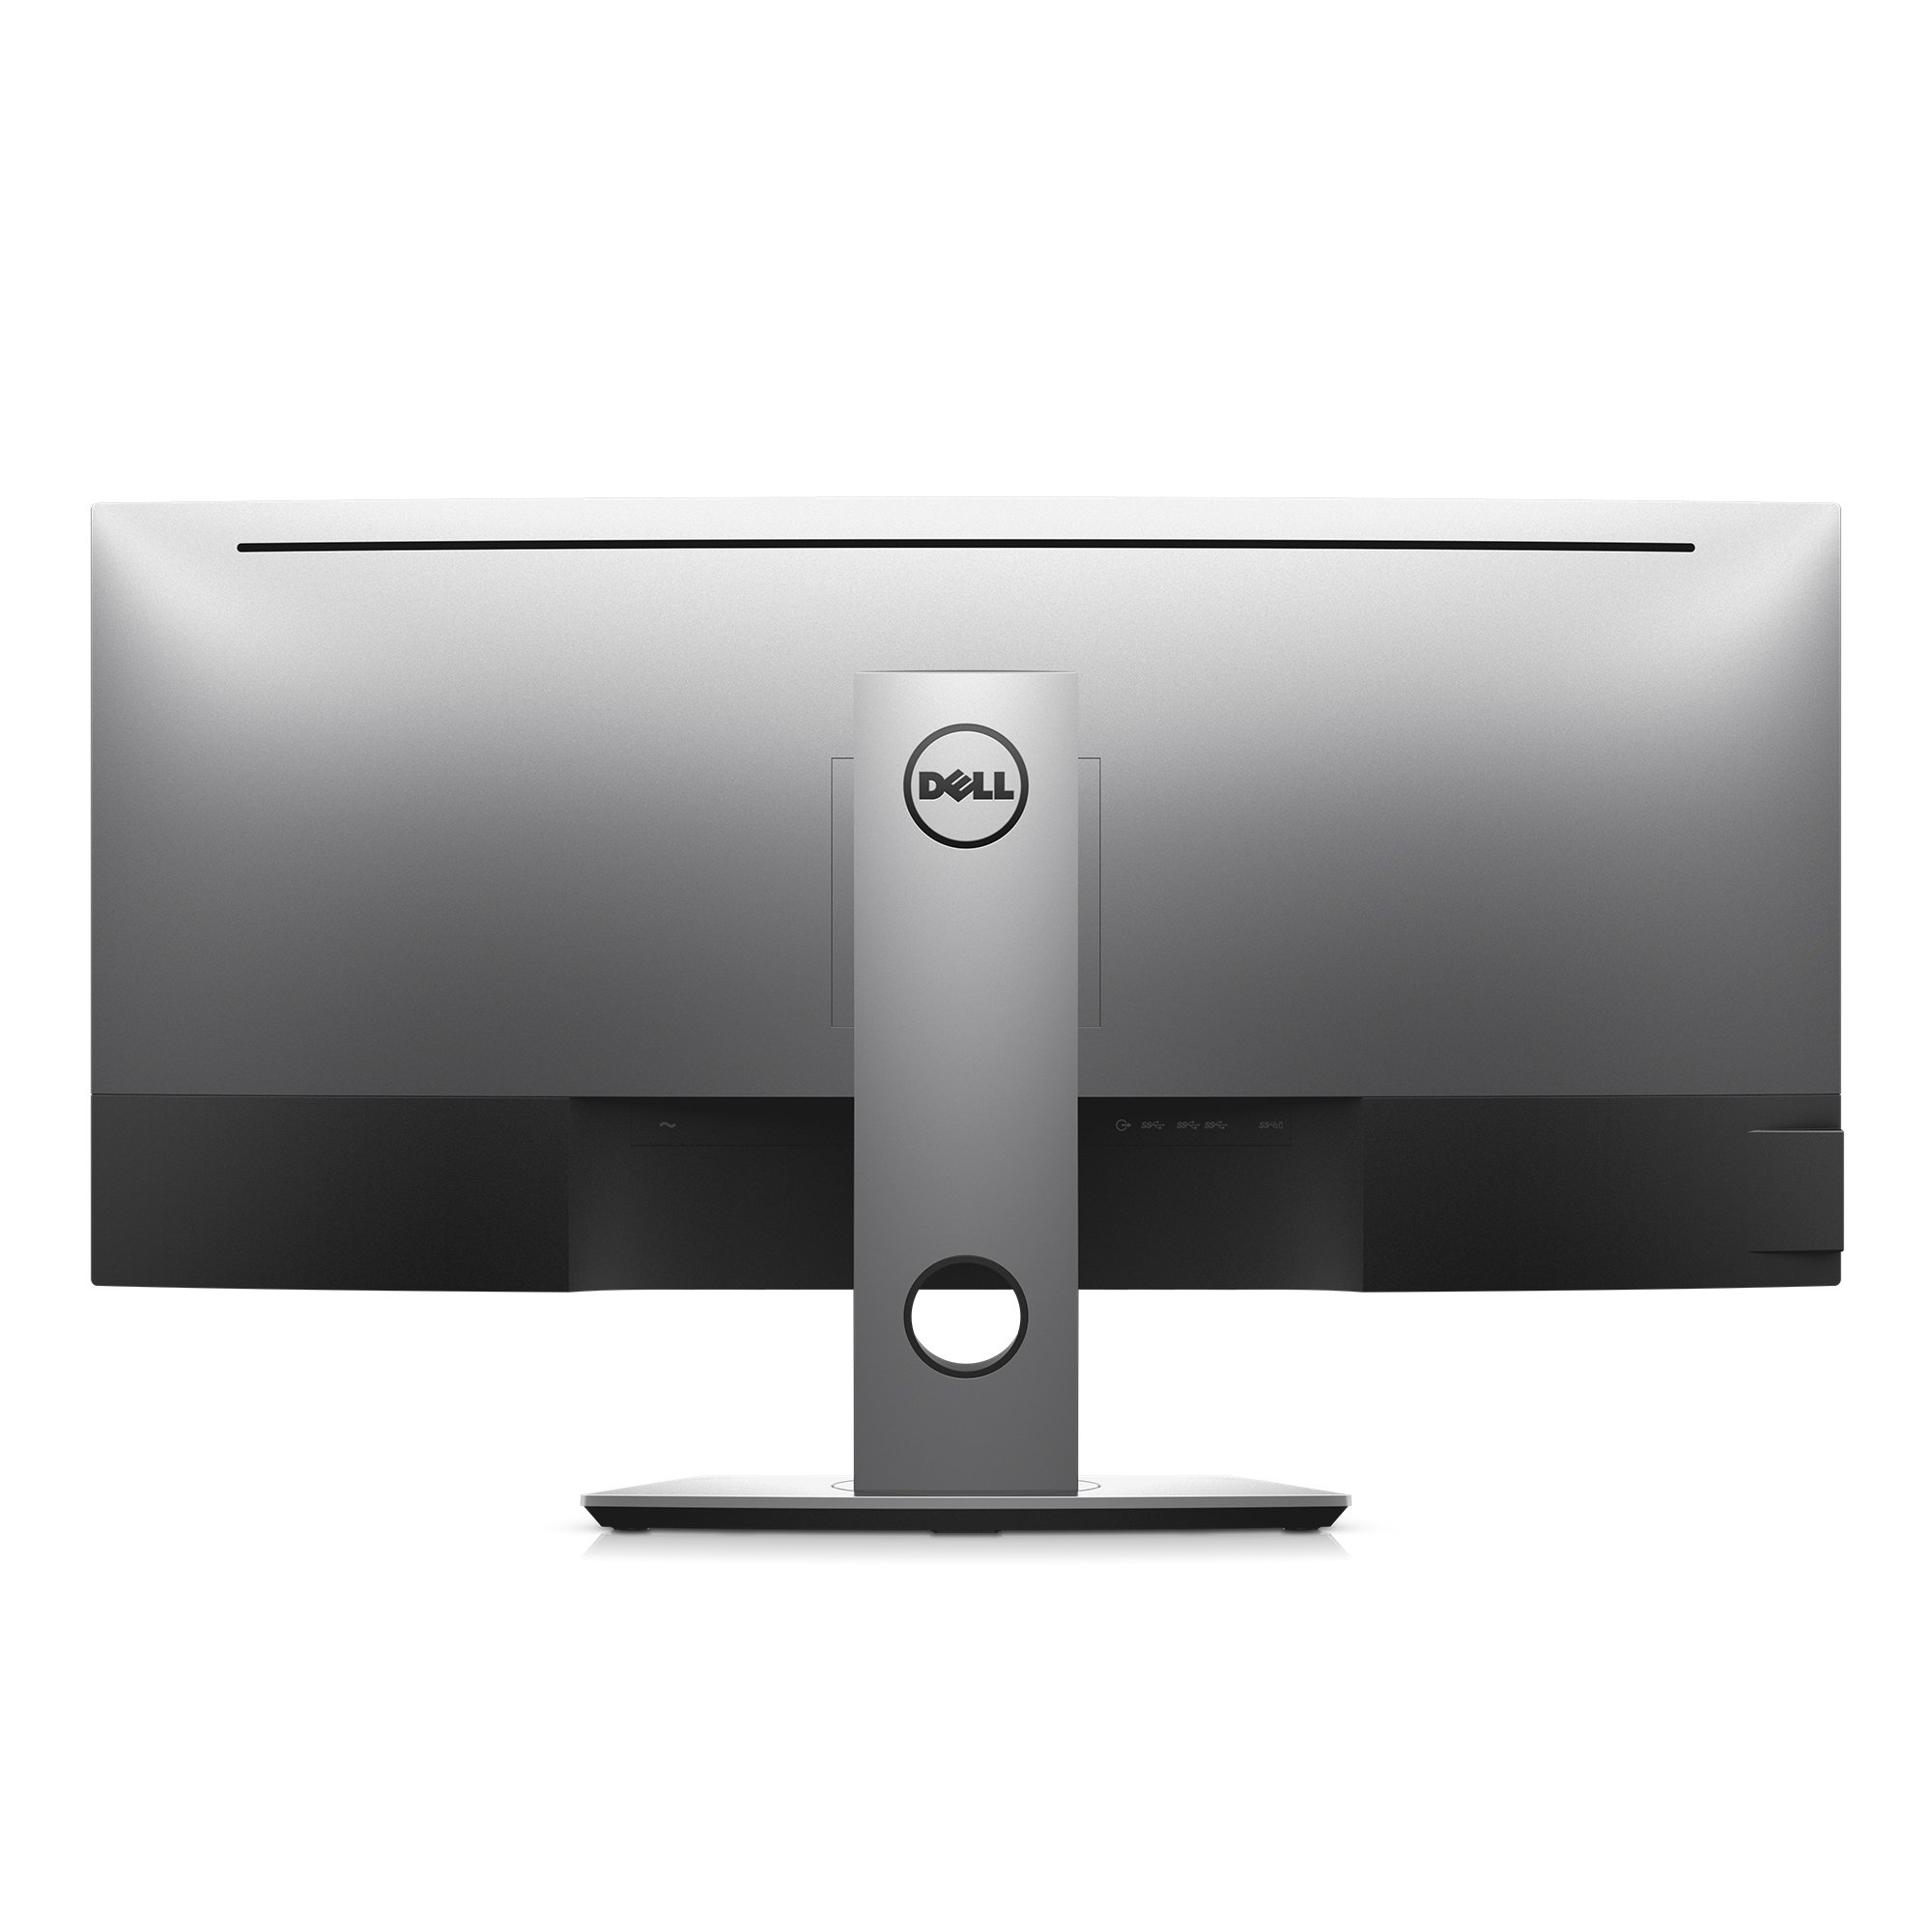 Dell U3417W FR3PK 34-Inch Screen Led-Lit Monitor by Dell (Image #1)